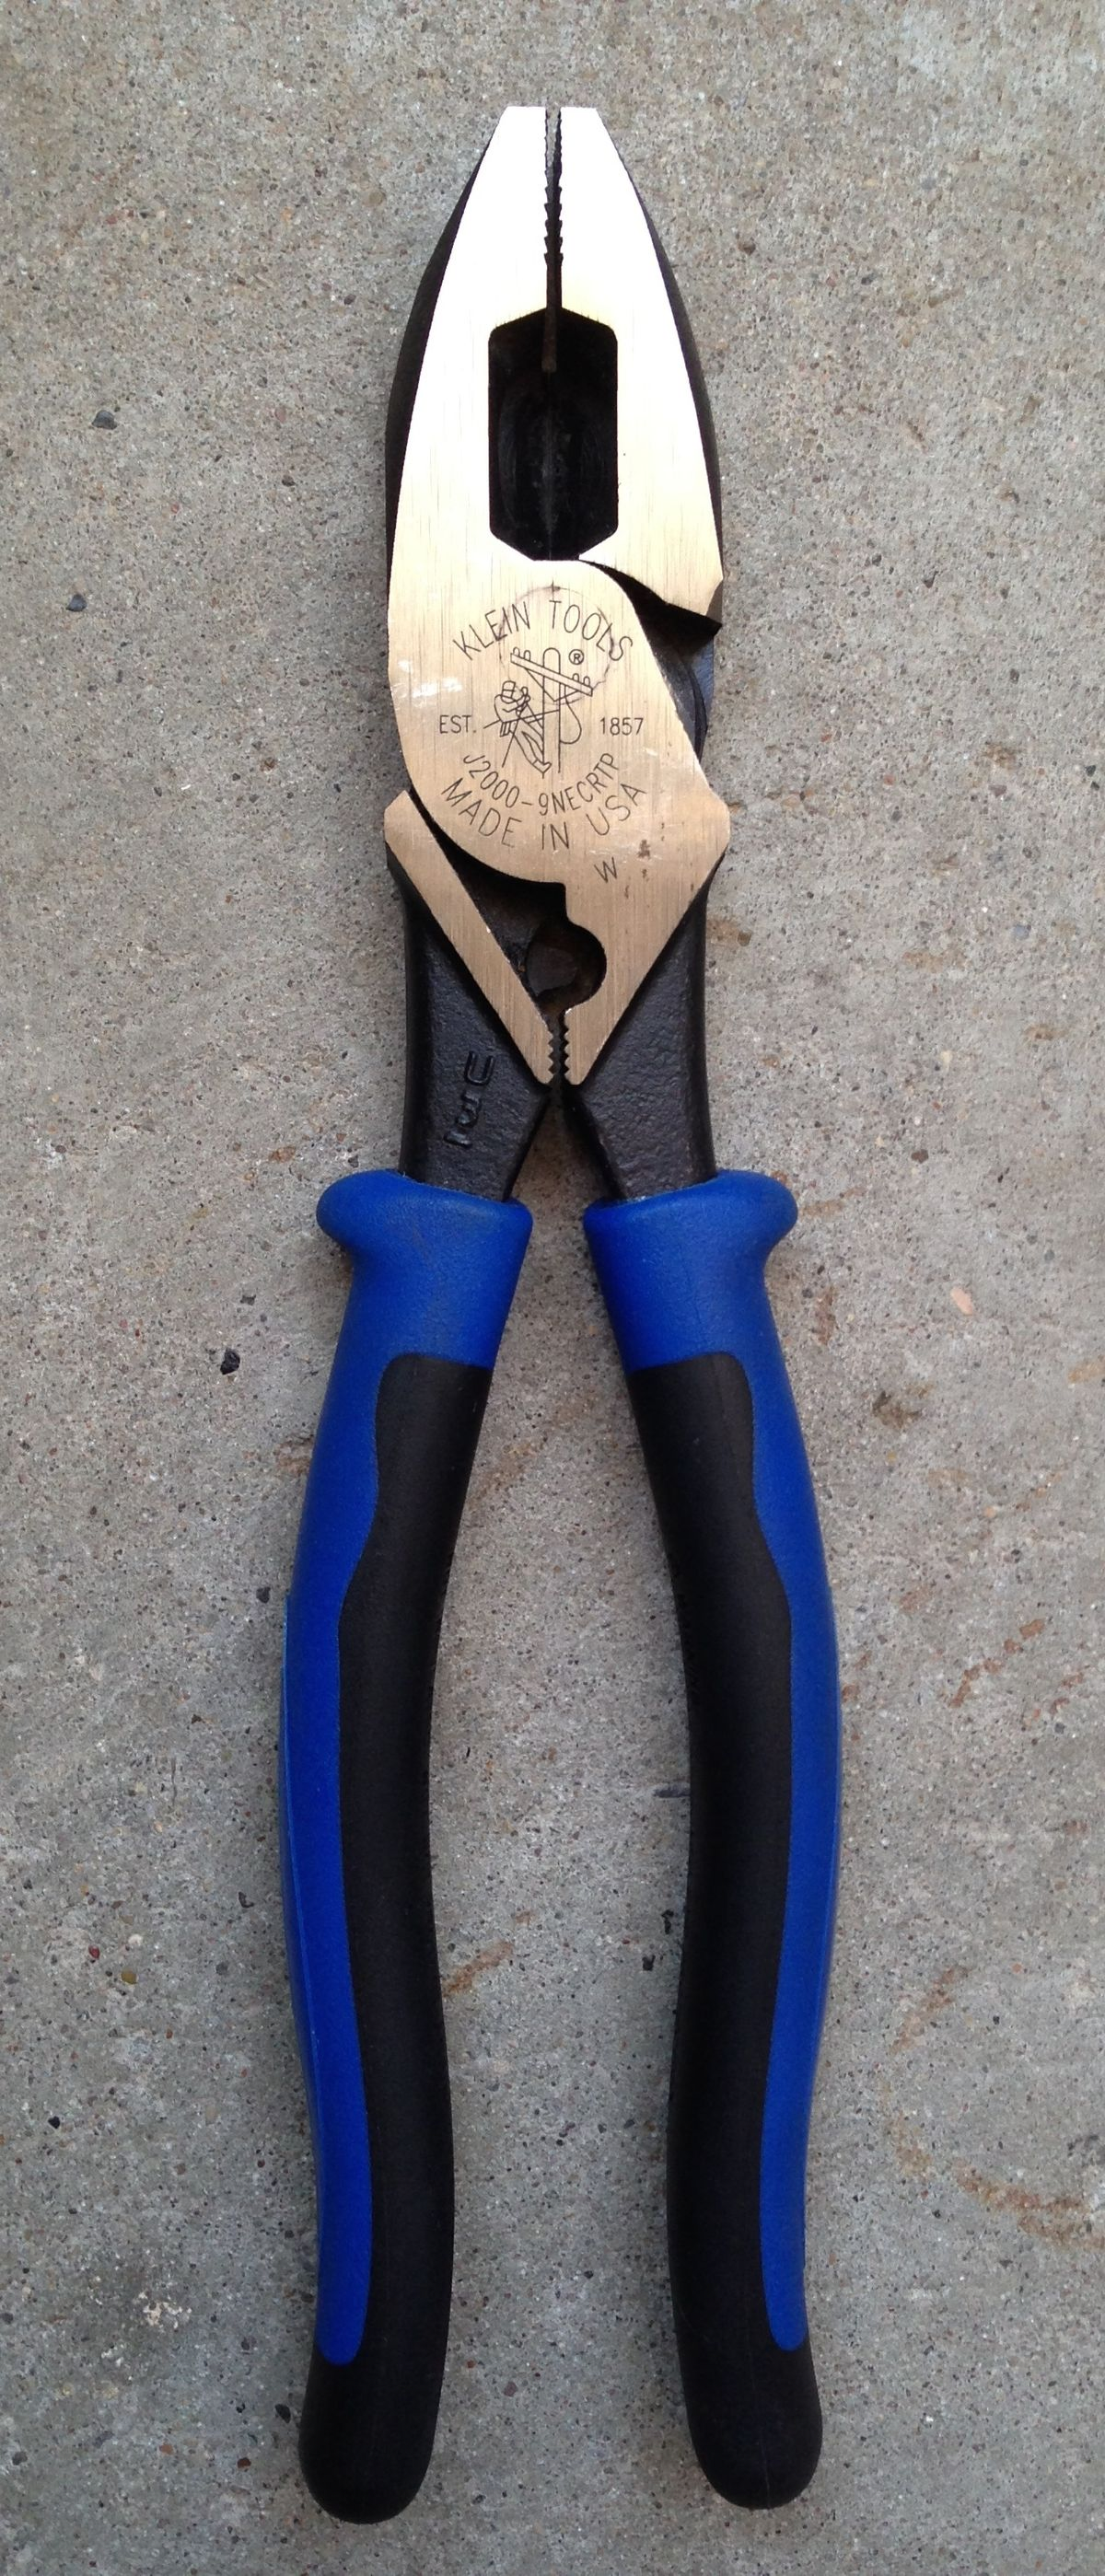 Linemans Pliers Wikipedia Ideal Circuit Breaker Finder The Multitool Of Electrical Work